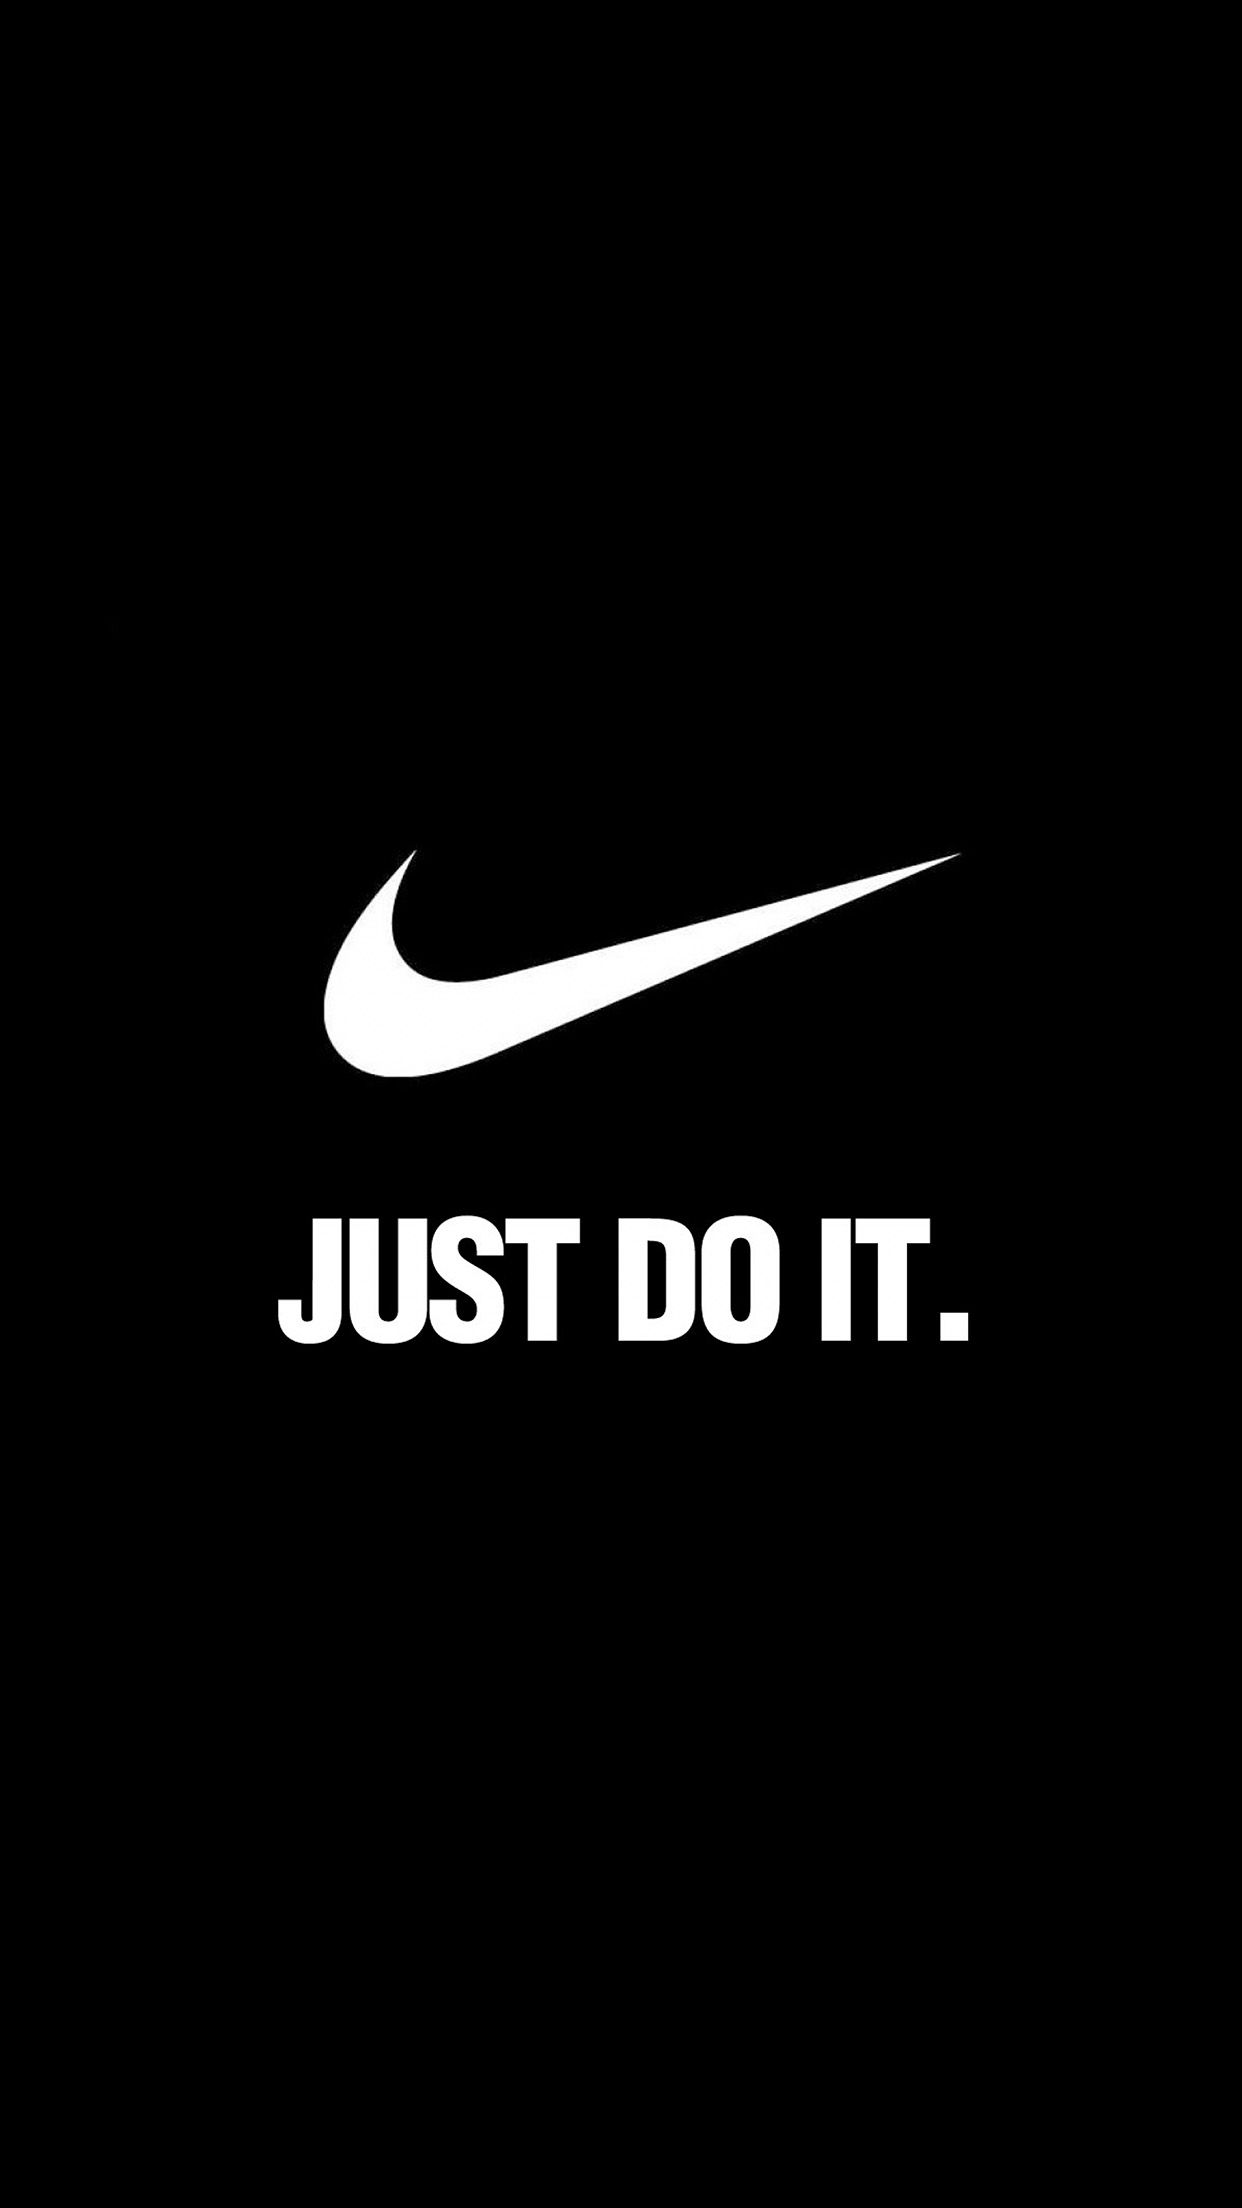 Debby Hal on Twitter. Nike Wallpaper IphoneBest Iphone WallpapersIphone Wallpaper  Just Do ItPink ...